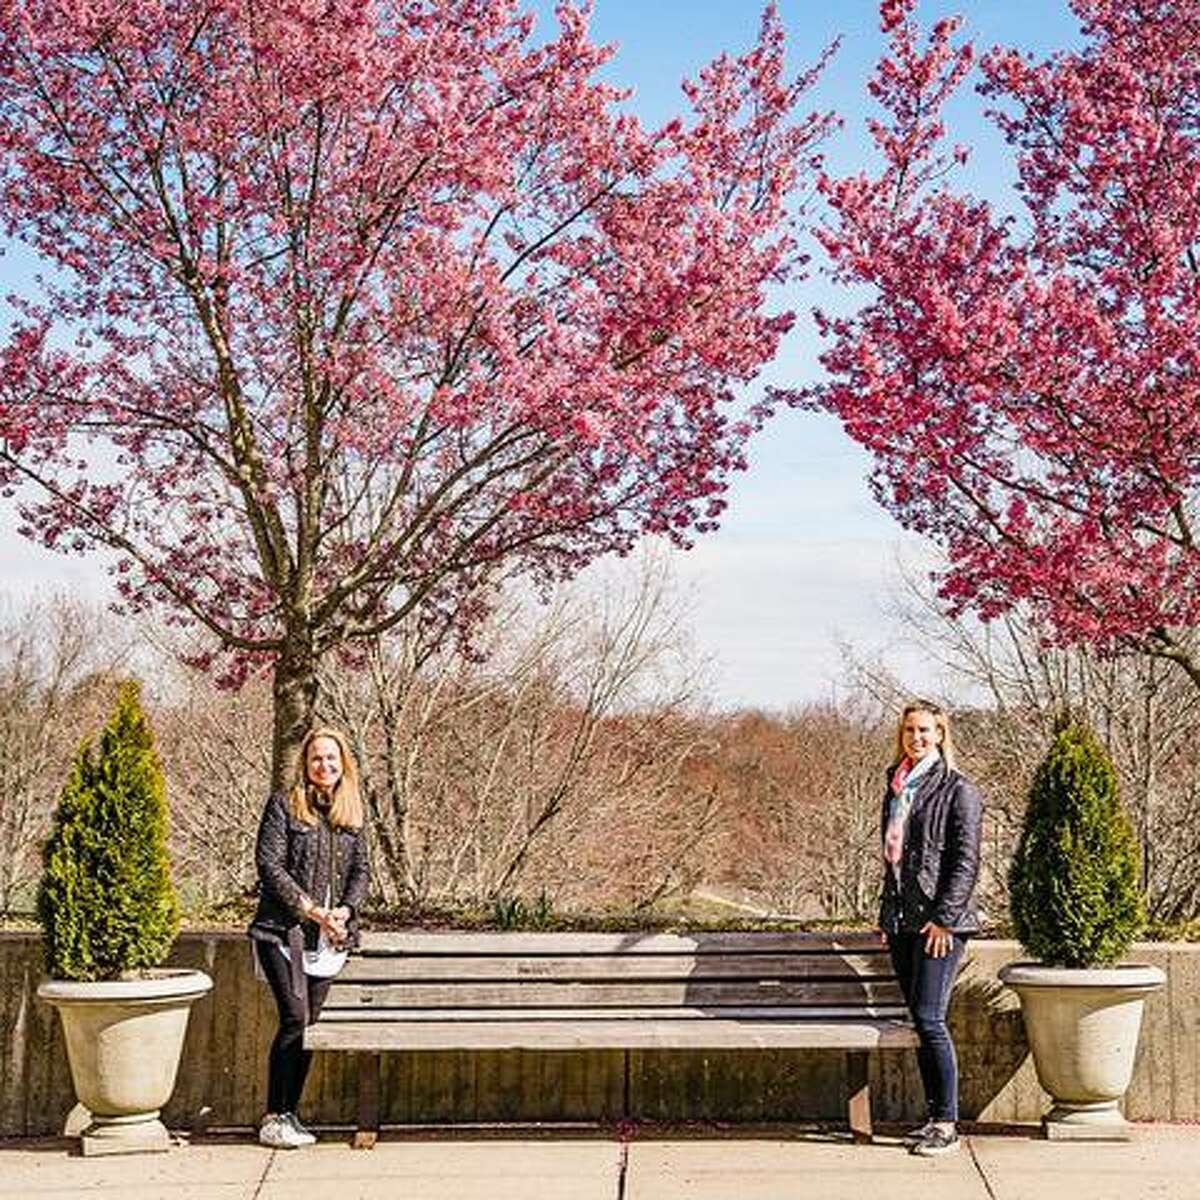 Mary Wade of Leap Year Images, and Katharine Calderwood of Calderwood Digital, have created TheFrontStepsProjectDarien, where they travel around town, taking free family photographs - from a safe distance - right outside the family's homes.